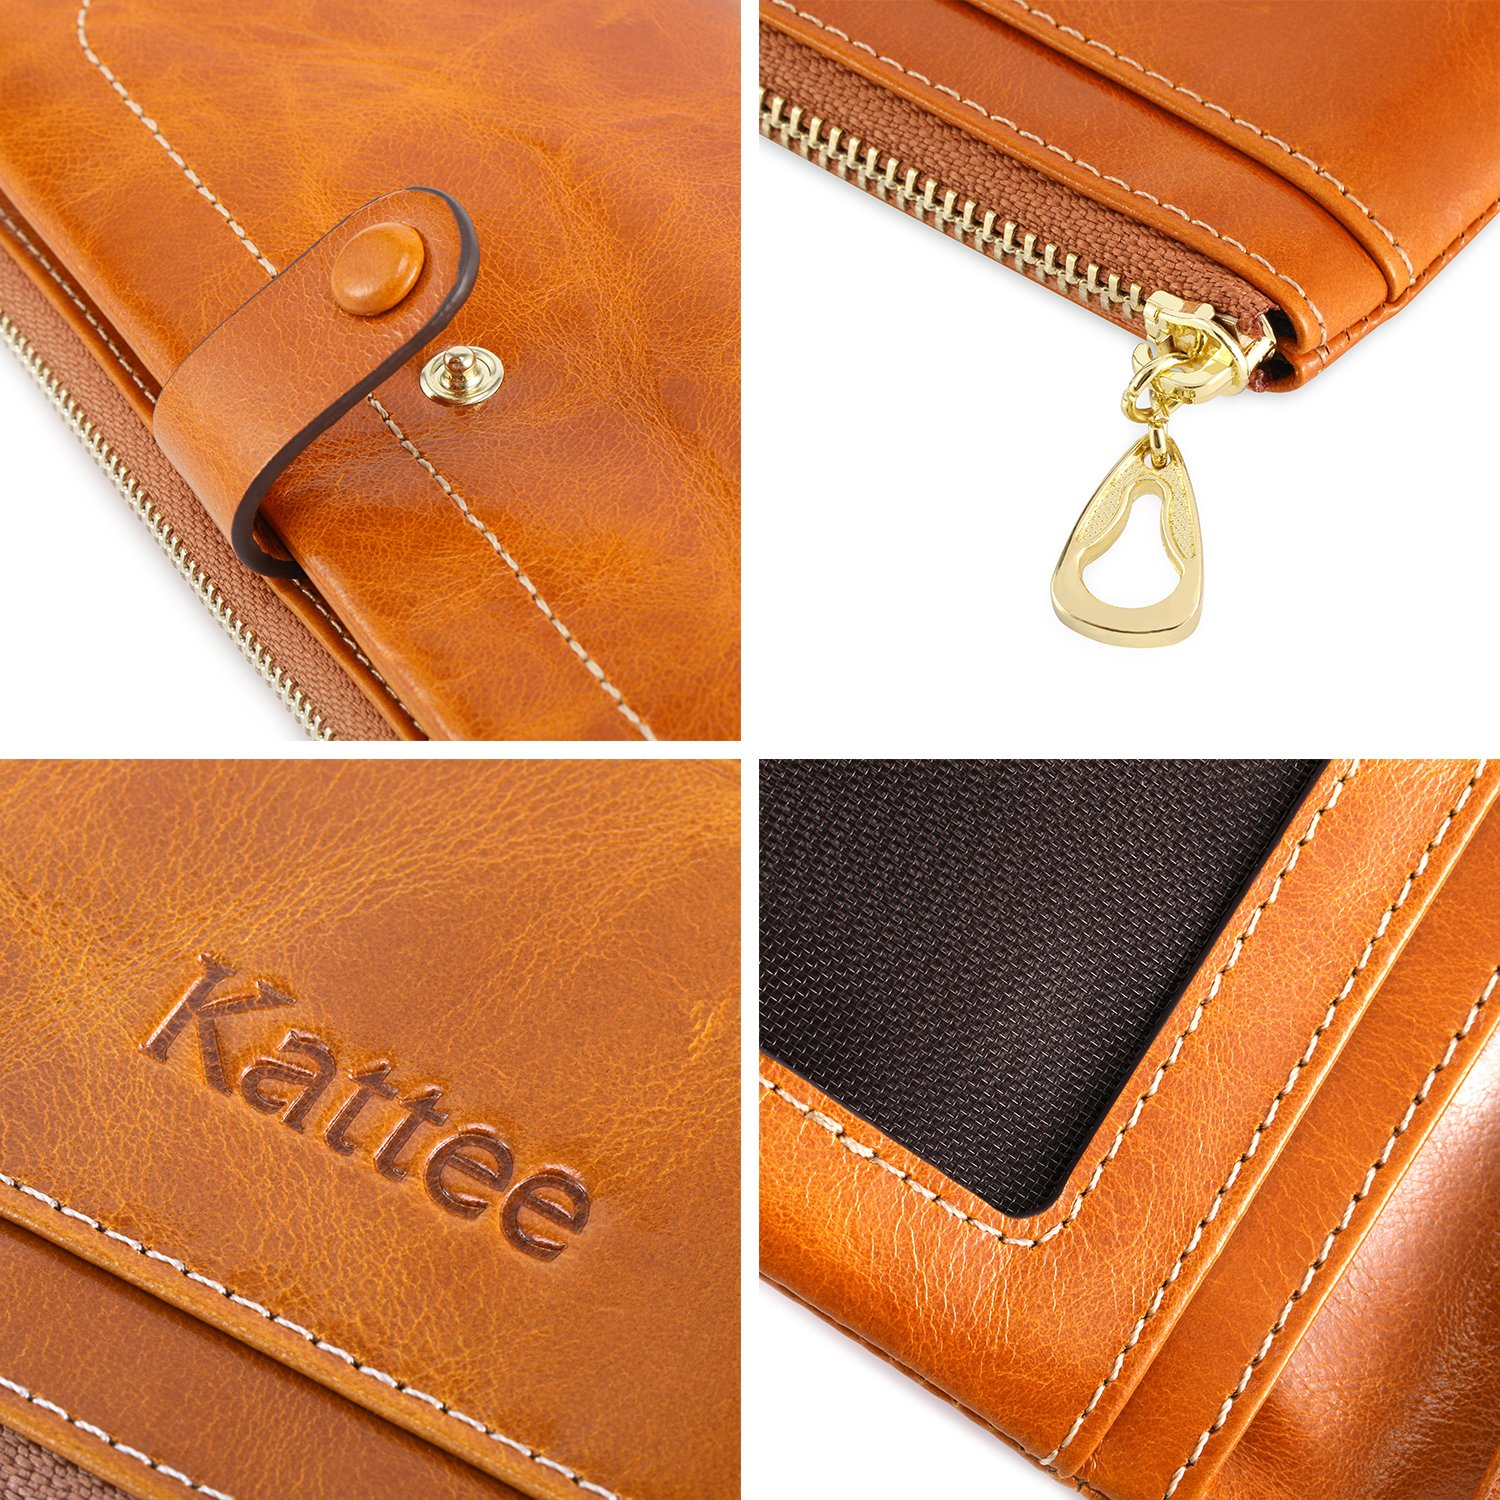 Kattee Women's Fashion Real Leather Zipper Wallet Card Bag Coin Case Phone Holder Brown by Kattee (Image #7)